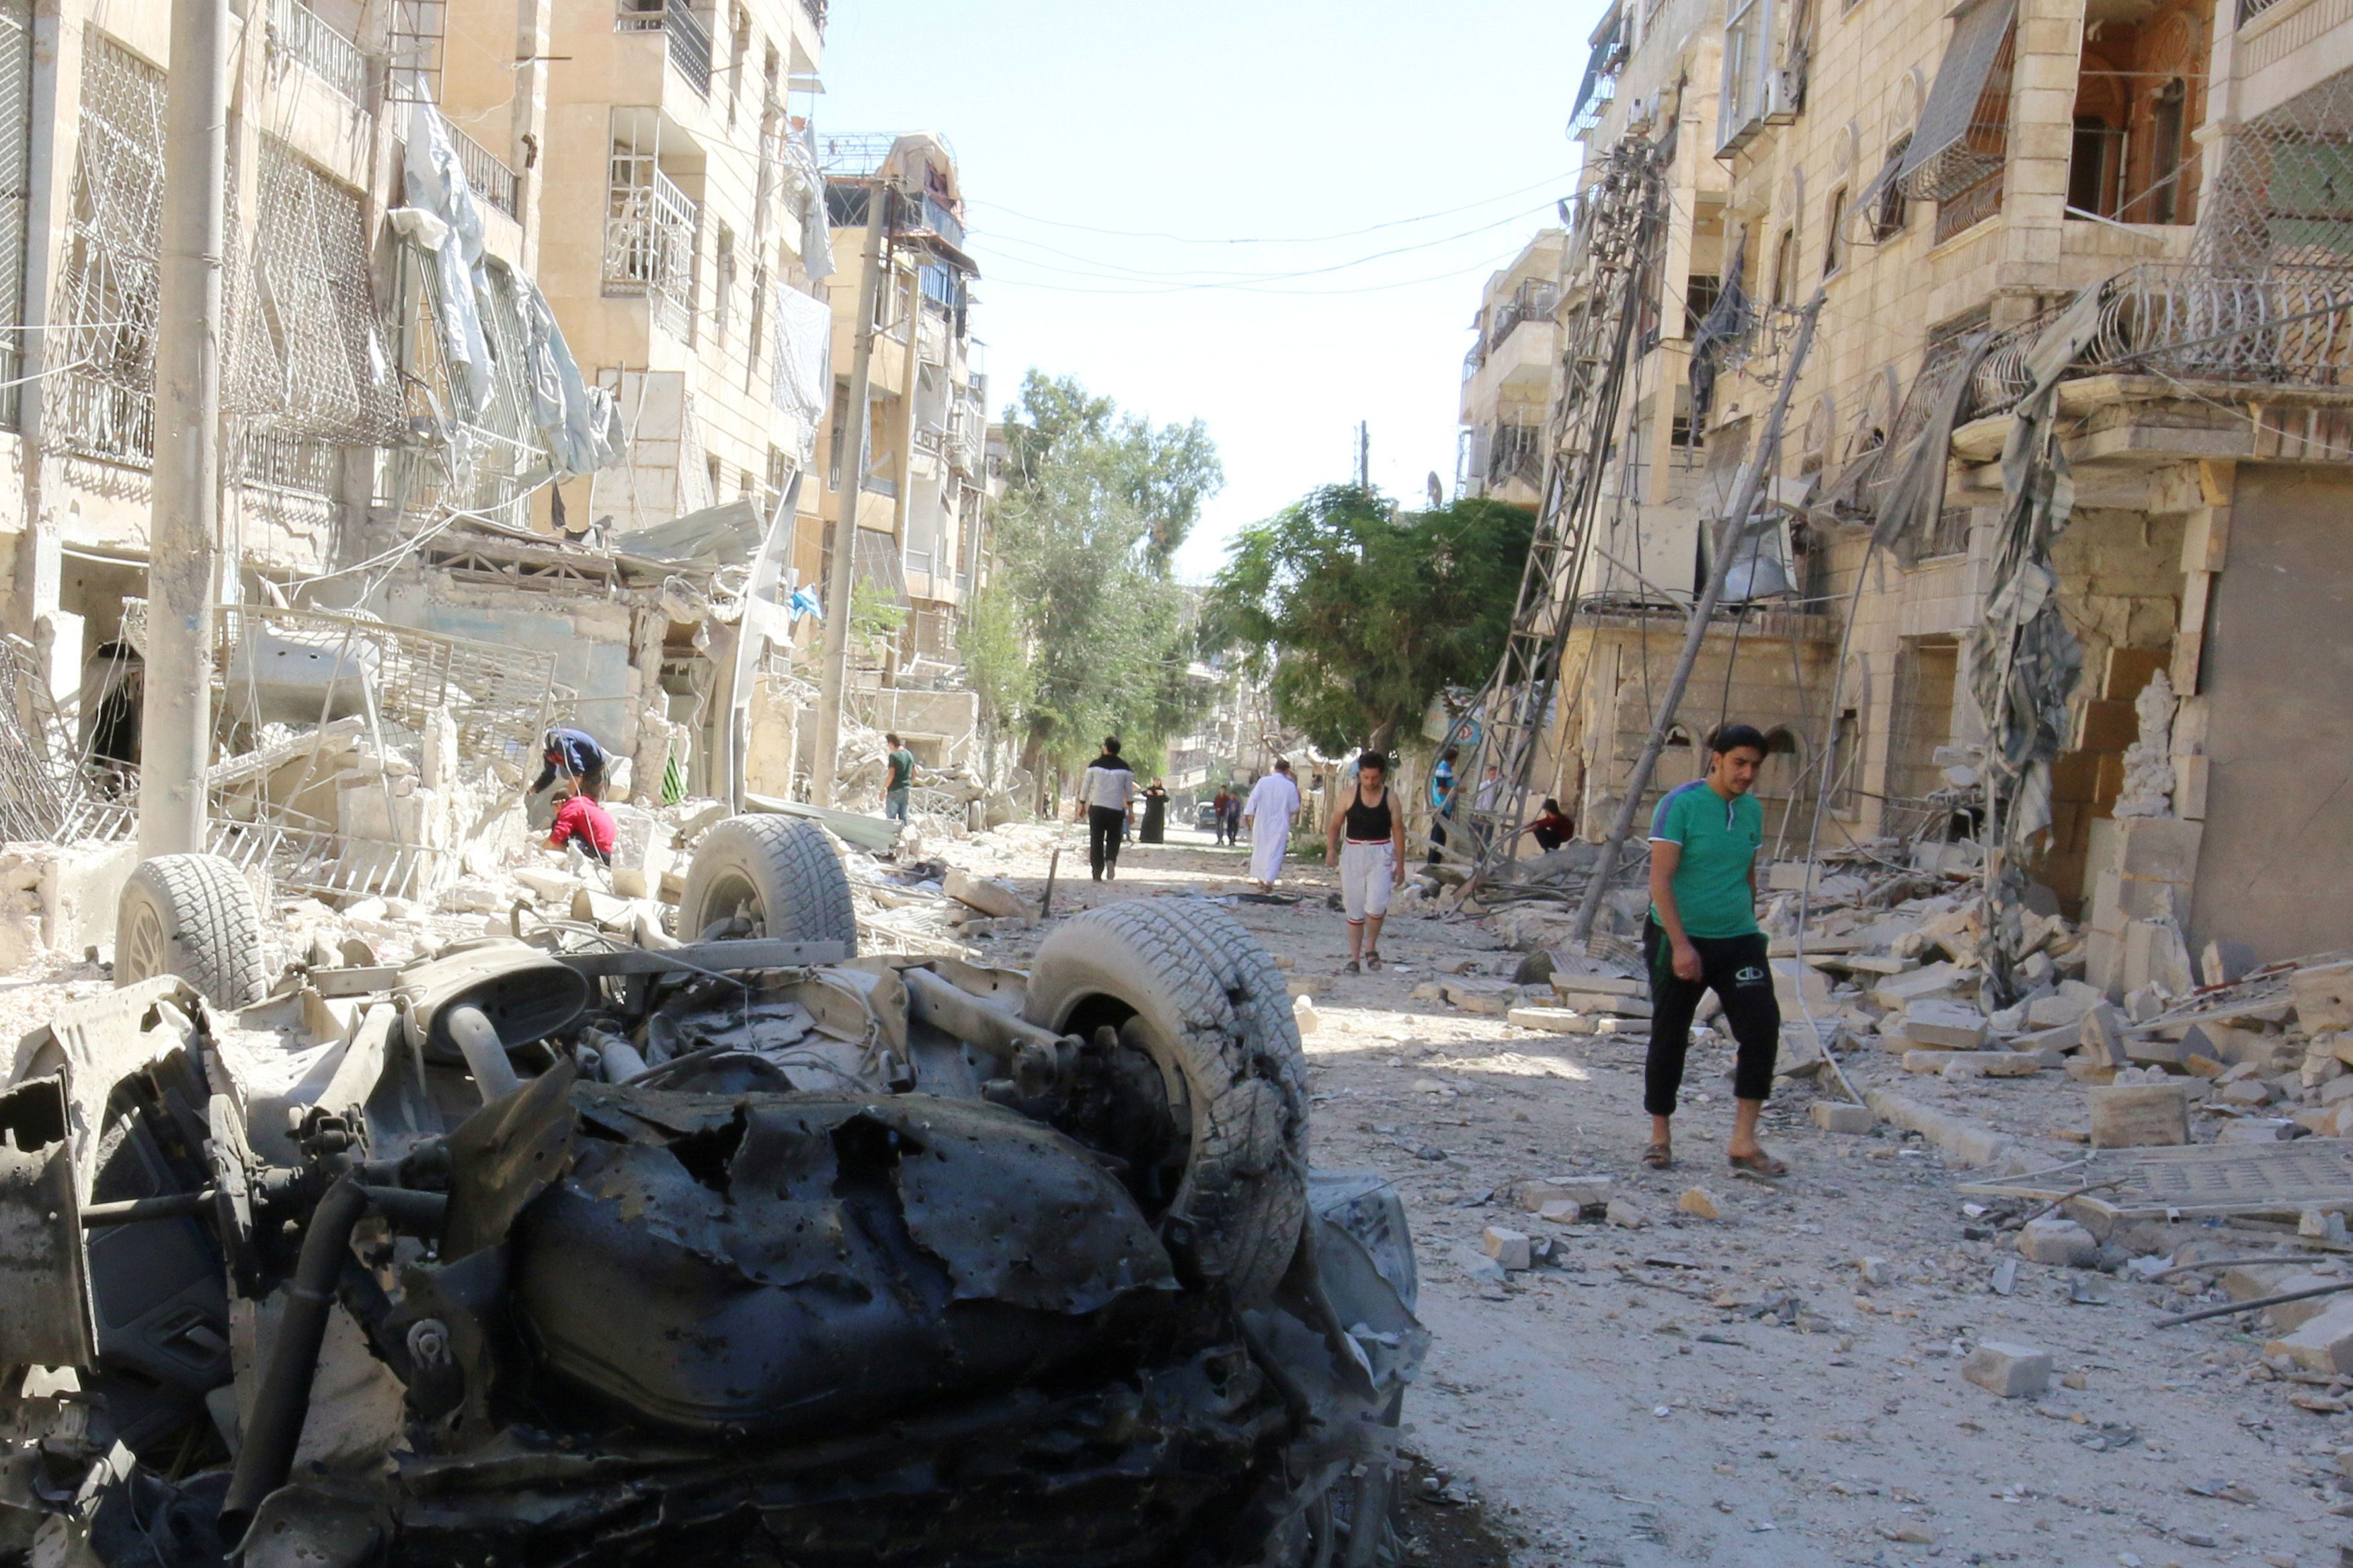 Survivors after an airstrike in the Seif al-Dawla neighborhood of Aleppo in Syria last week.